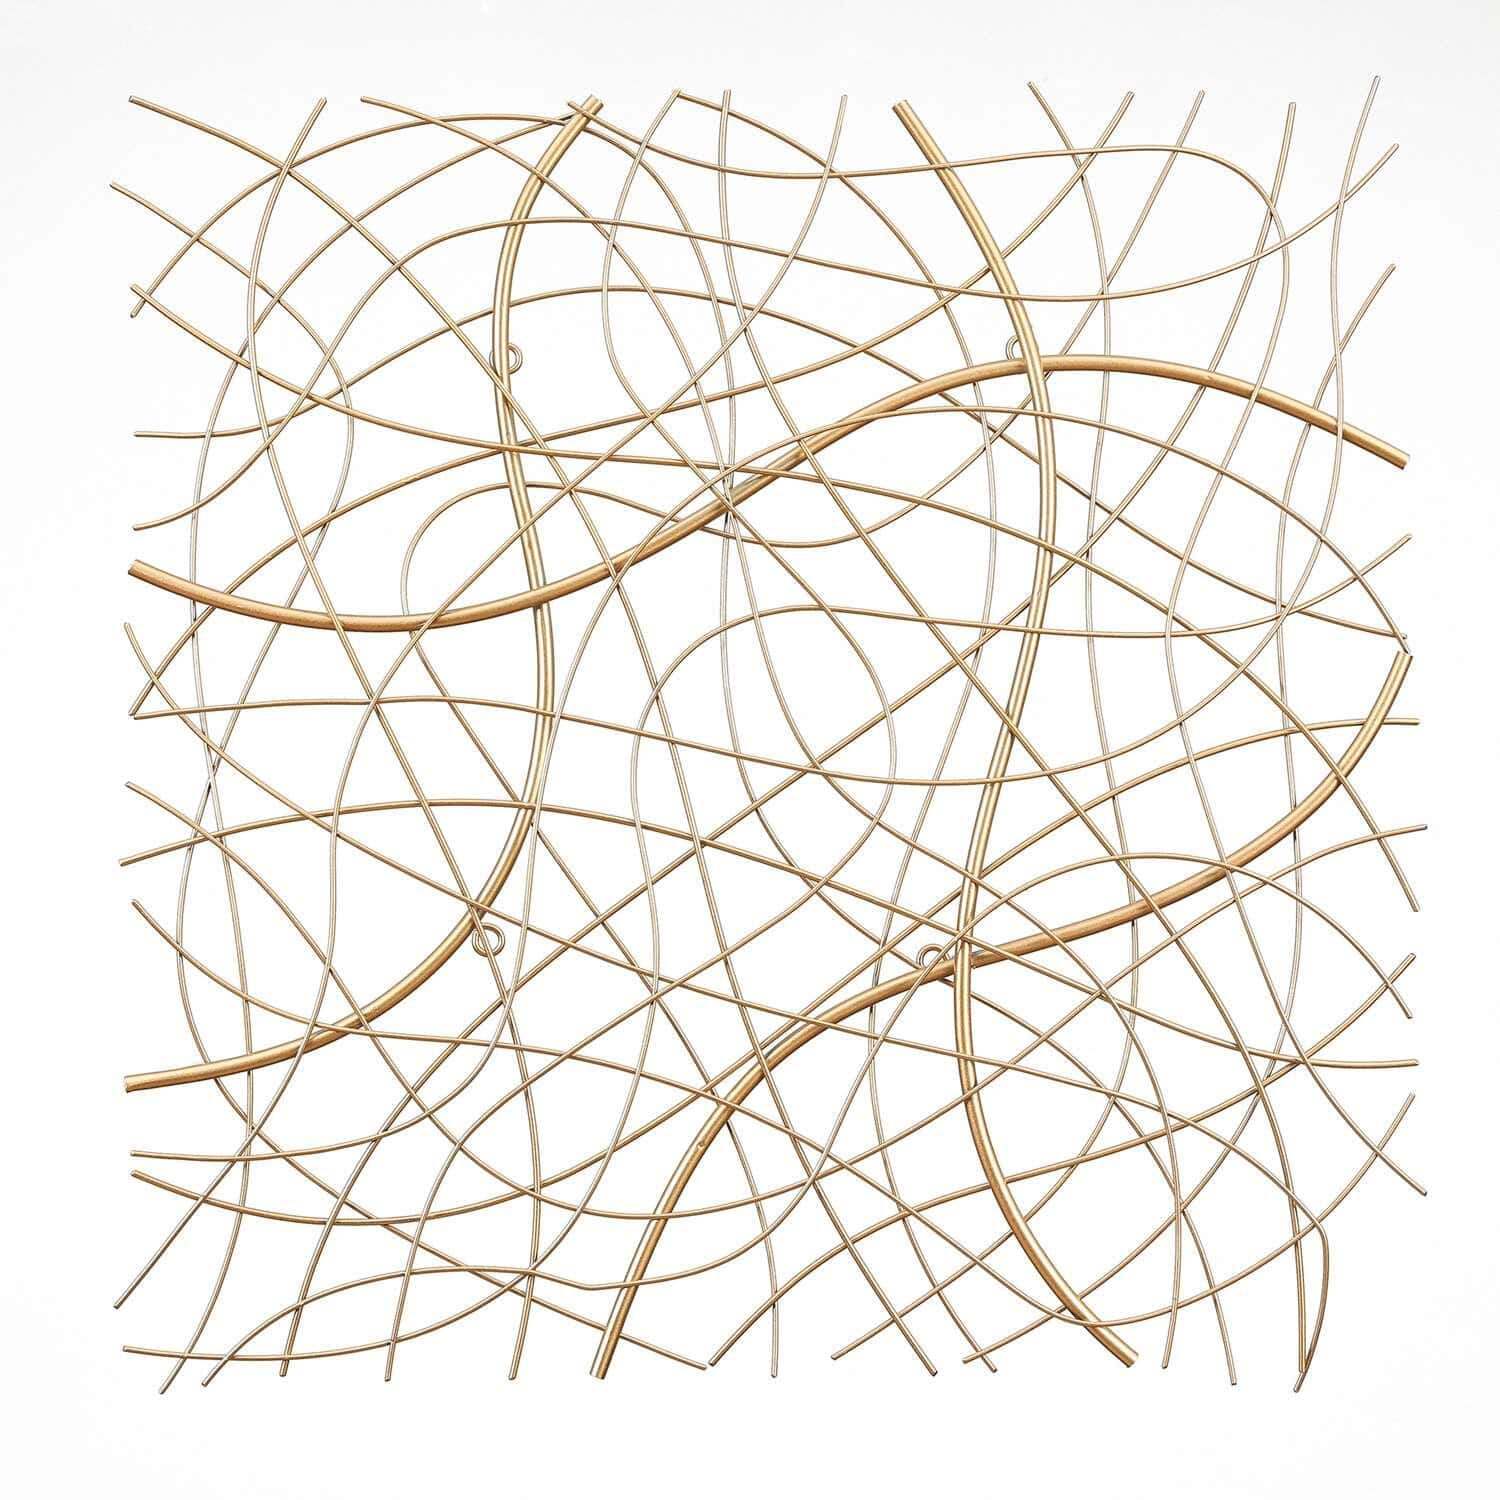 """26.4"""" Winsome Gold Abstract Square Gold Metal Wall Art $30, Parvez Taj Brushed Aluminum Wall Art: 18 H x 12"""" W """"Haldia"""" $48 & More at Home Dépot + Free Curbside Pickup"""